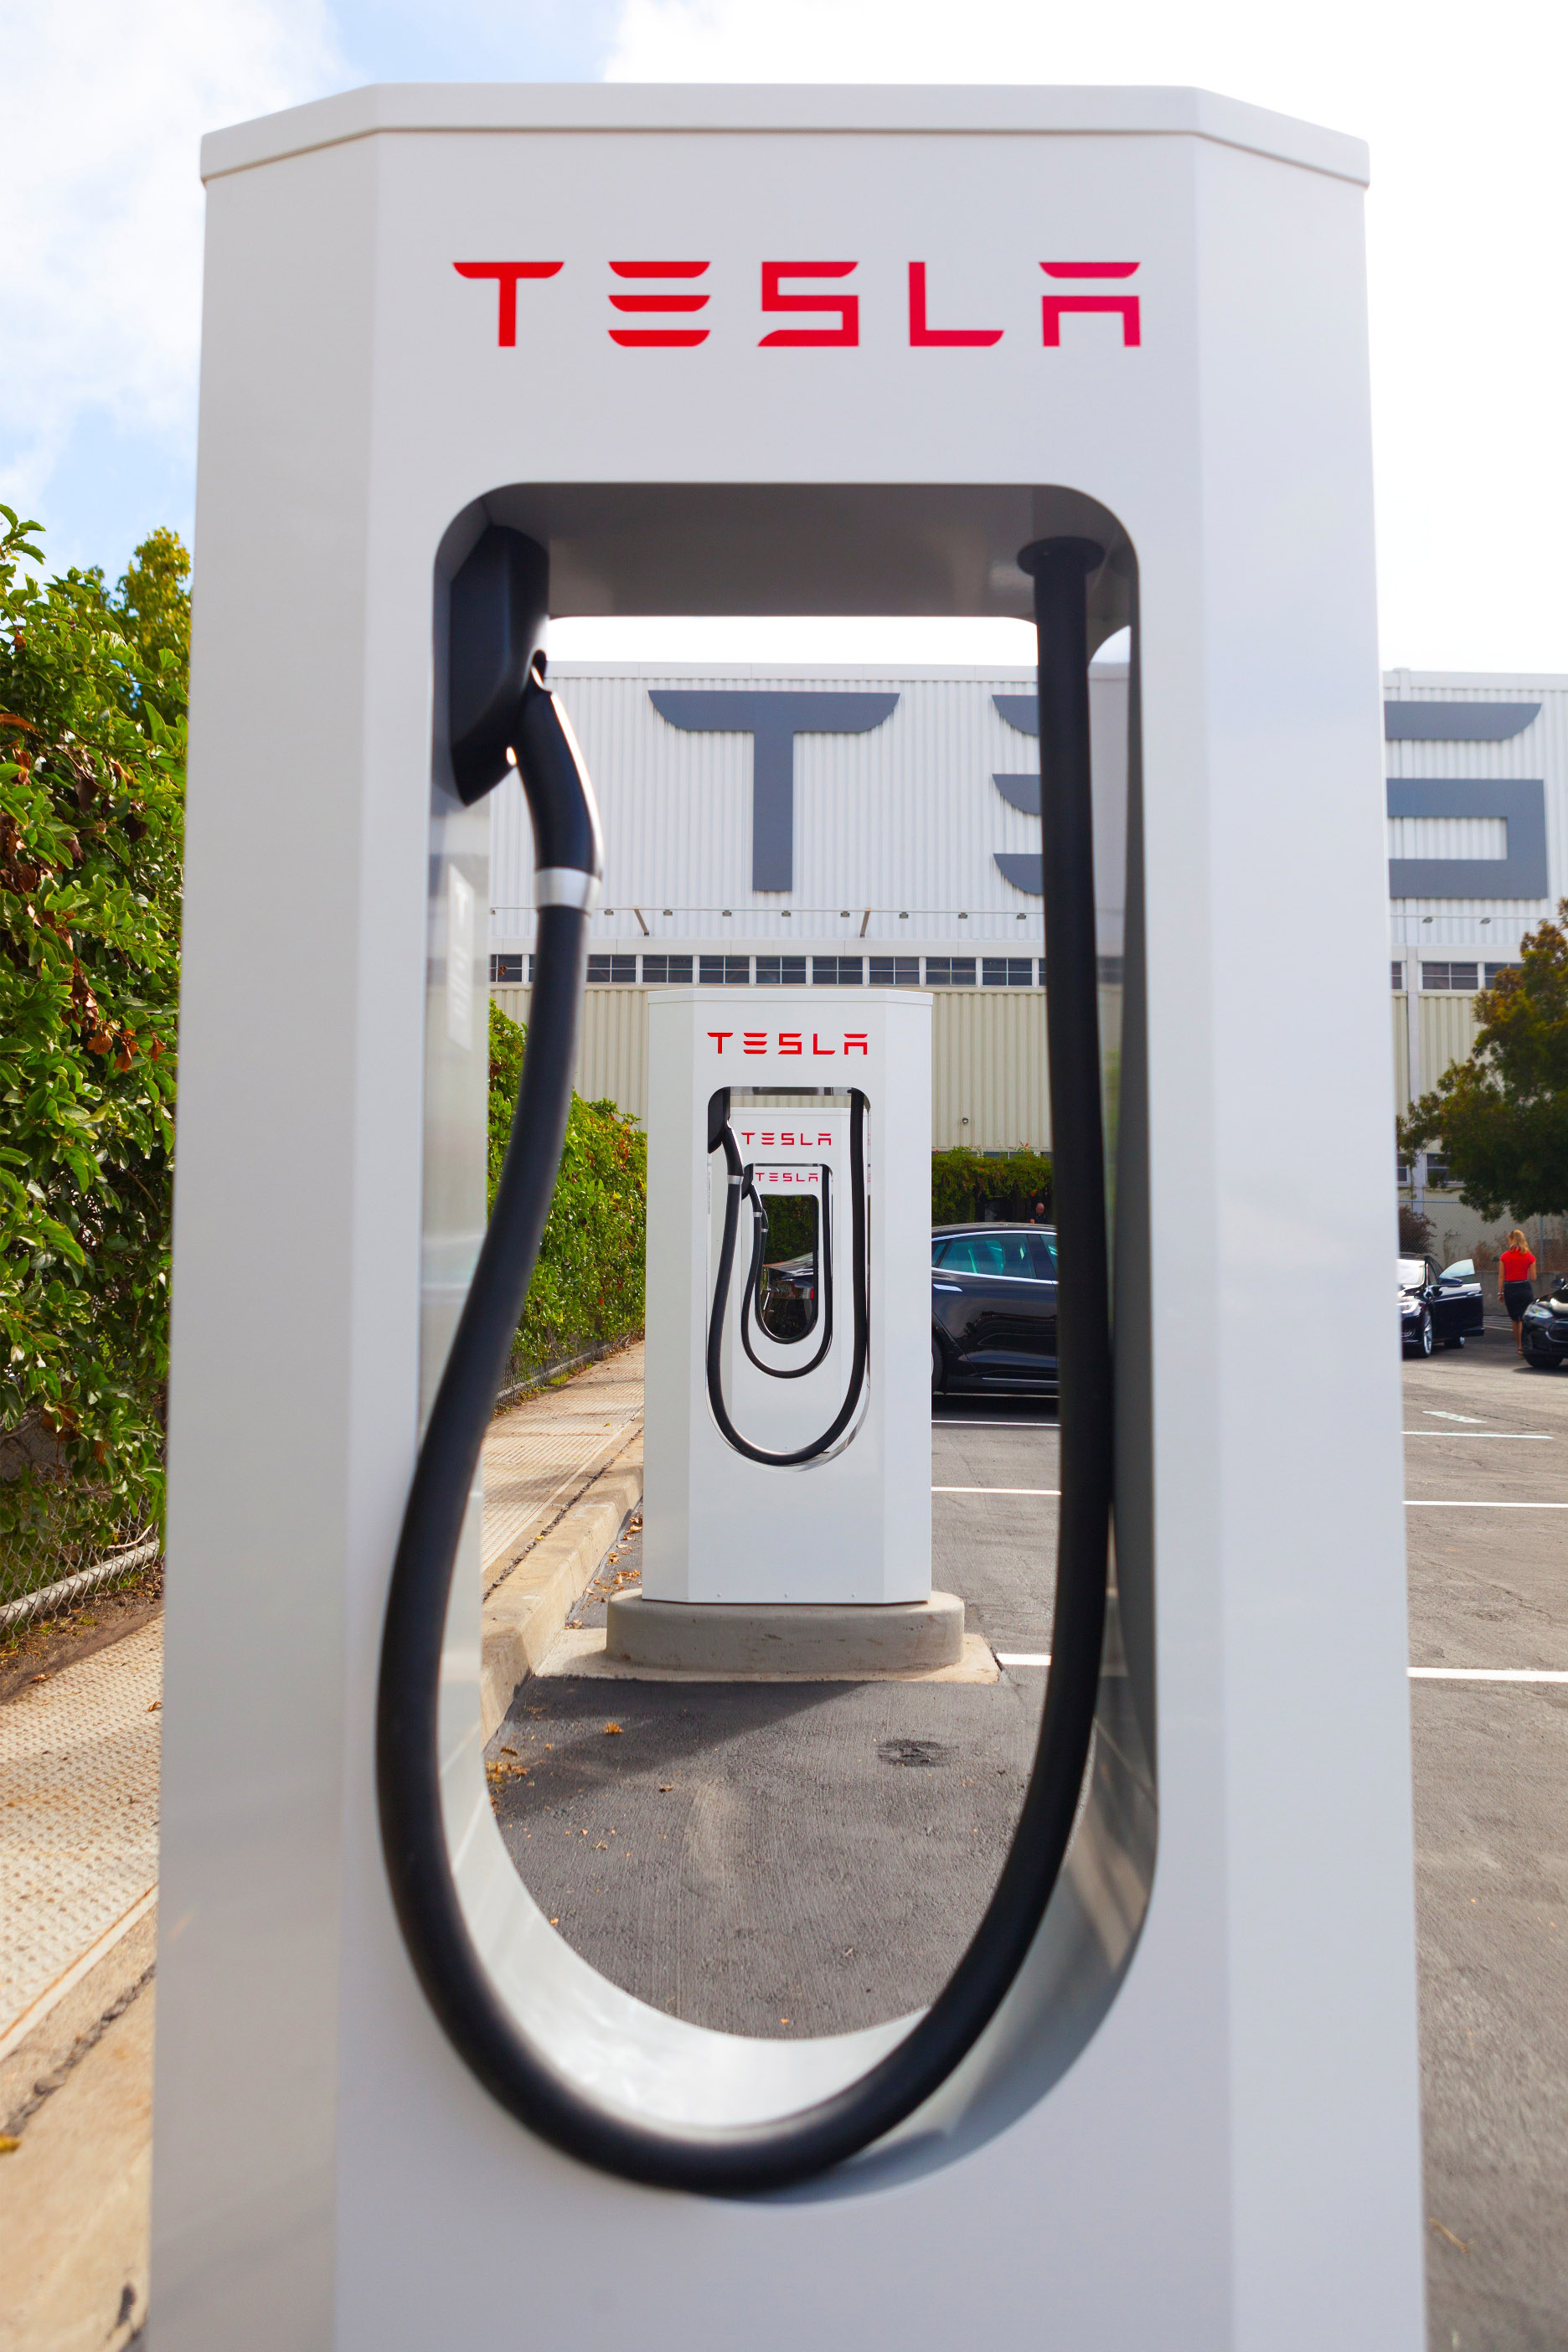 Tesla_Supercharger-original.jpg